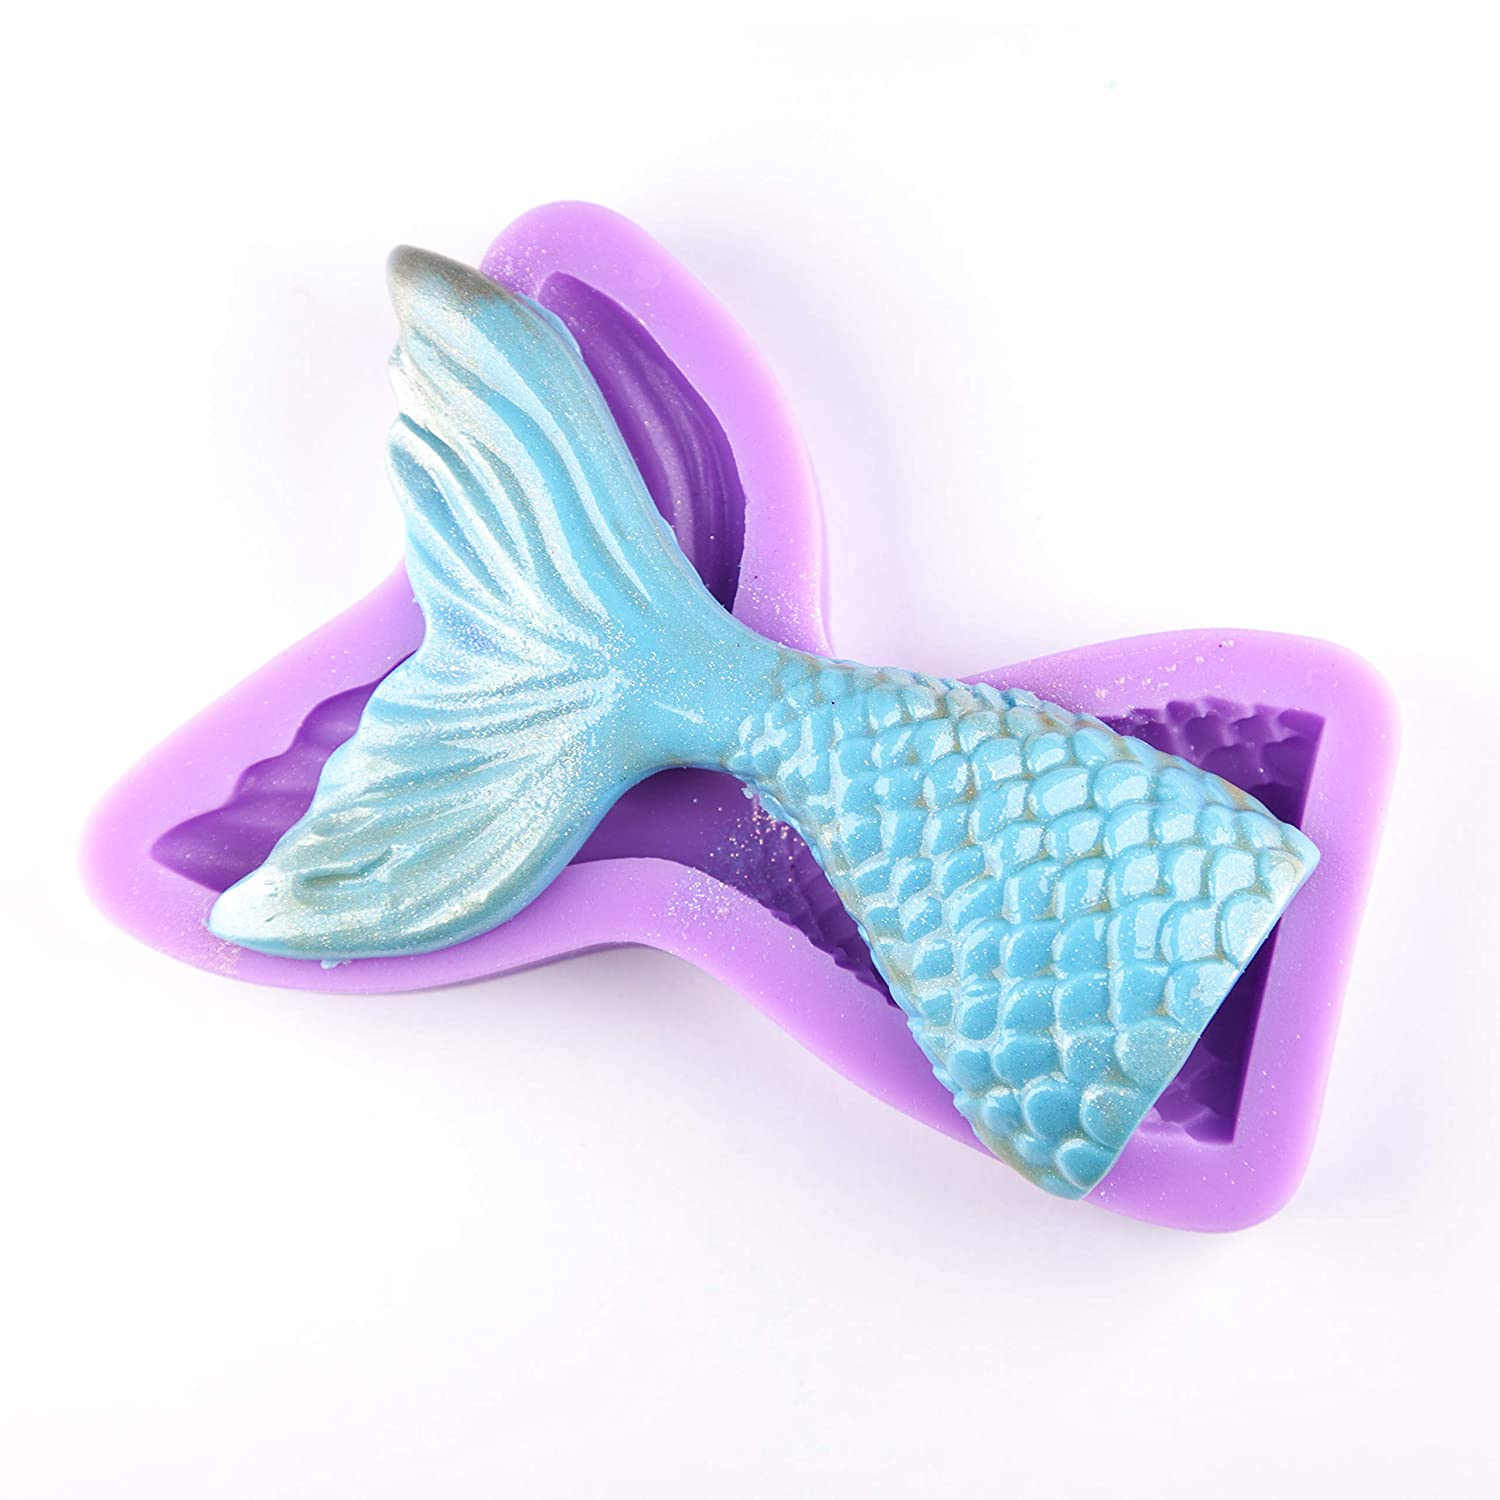 Silicone Fondant Molds with High Definition Sugarcraft Candy Quality Cupcake DIY Topper Cake Decoration Birthday Party Tool for Decorating Cakes Tasty Molds Large Mermaid Tail Mold Chocolate